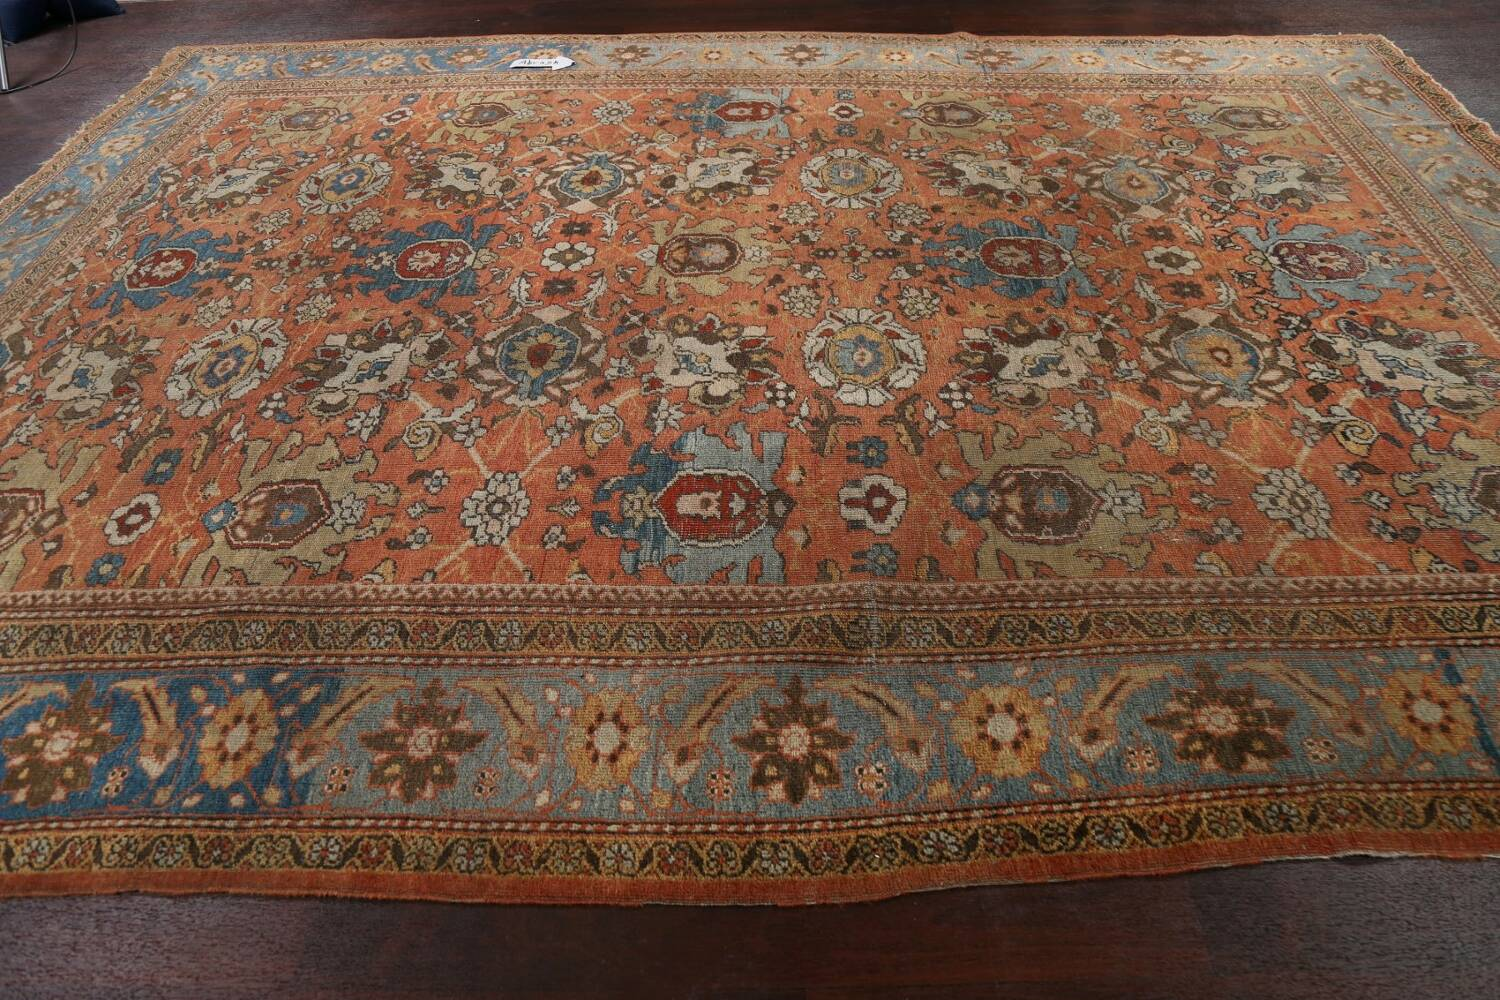 Pre-1900 Antique Vegetable Dye Sultanabad Persian Area Rug 9x12 image 16